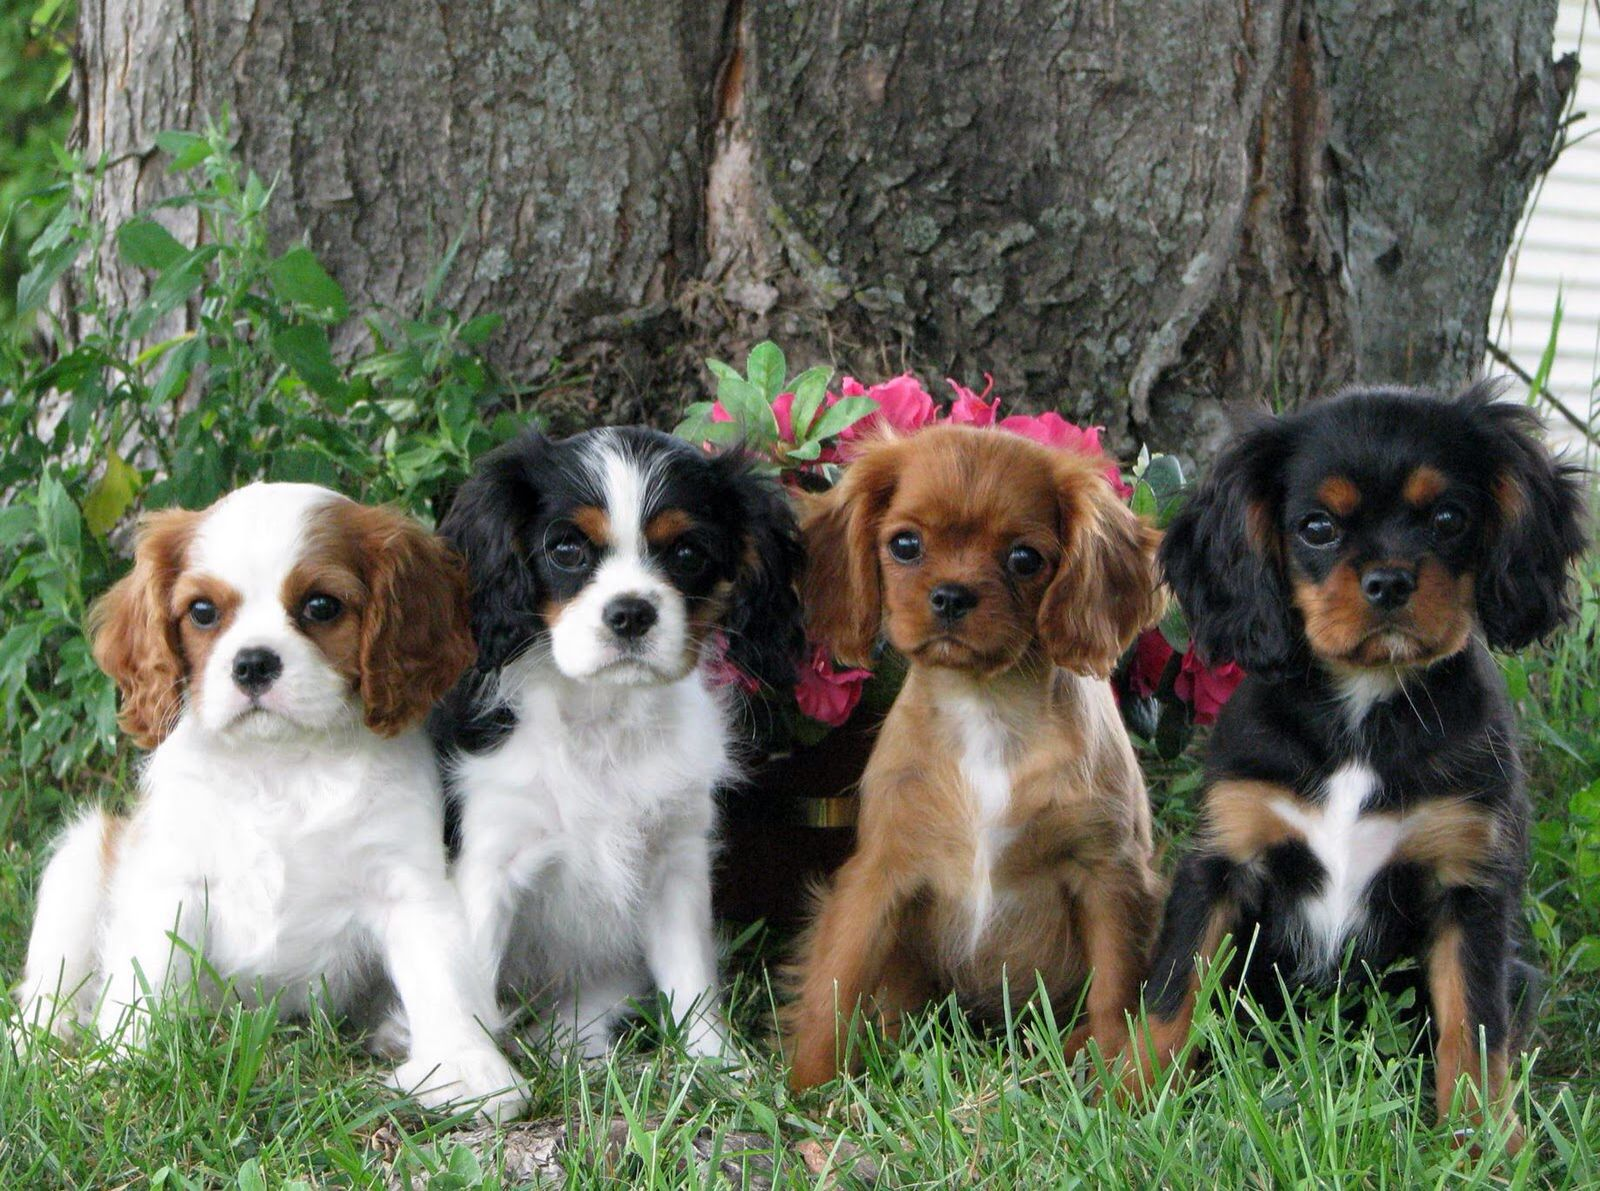 Some Of The Best Dog Breeds For Families King Charles Cavalier Spaniel Puppy Spaniel Puppies King Charles Puppy